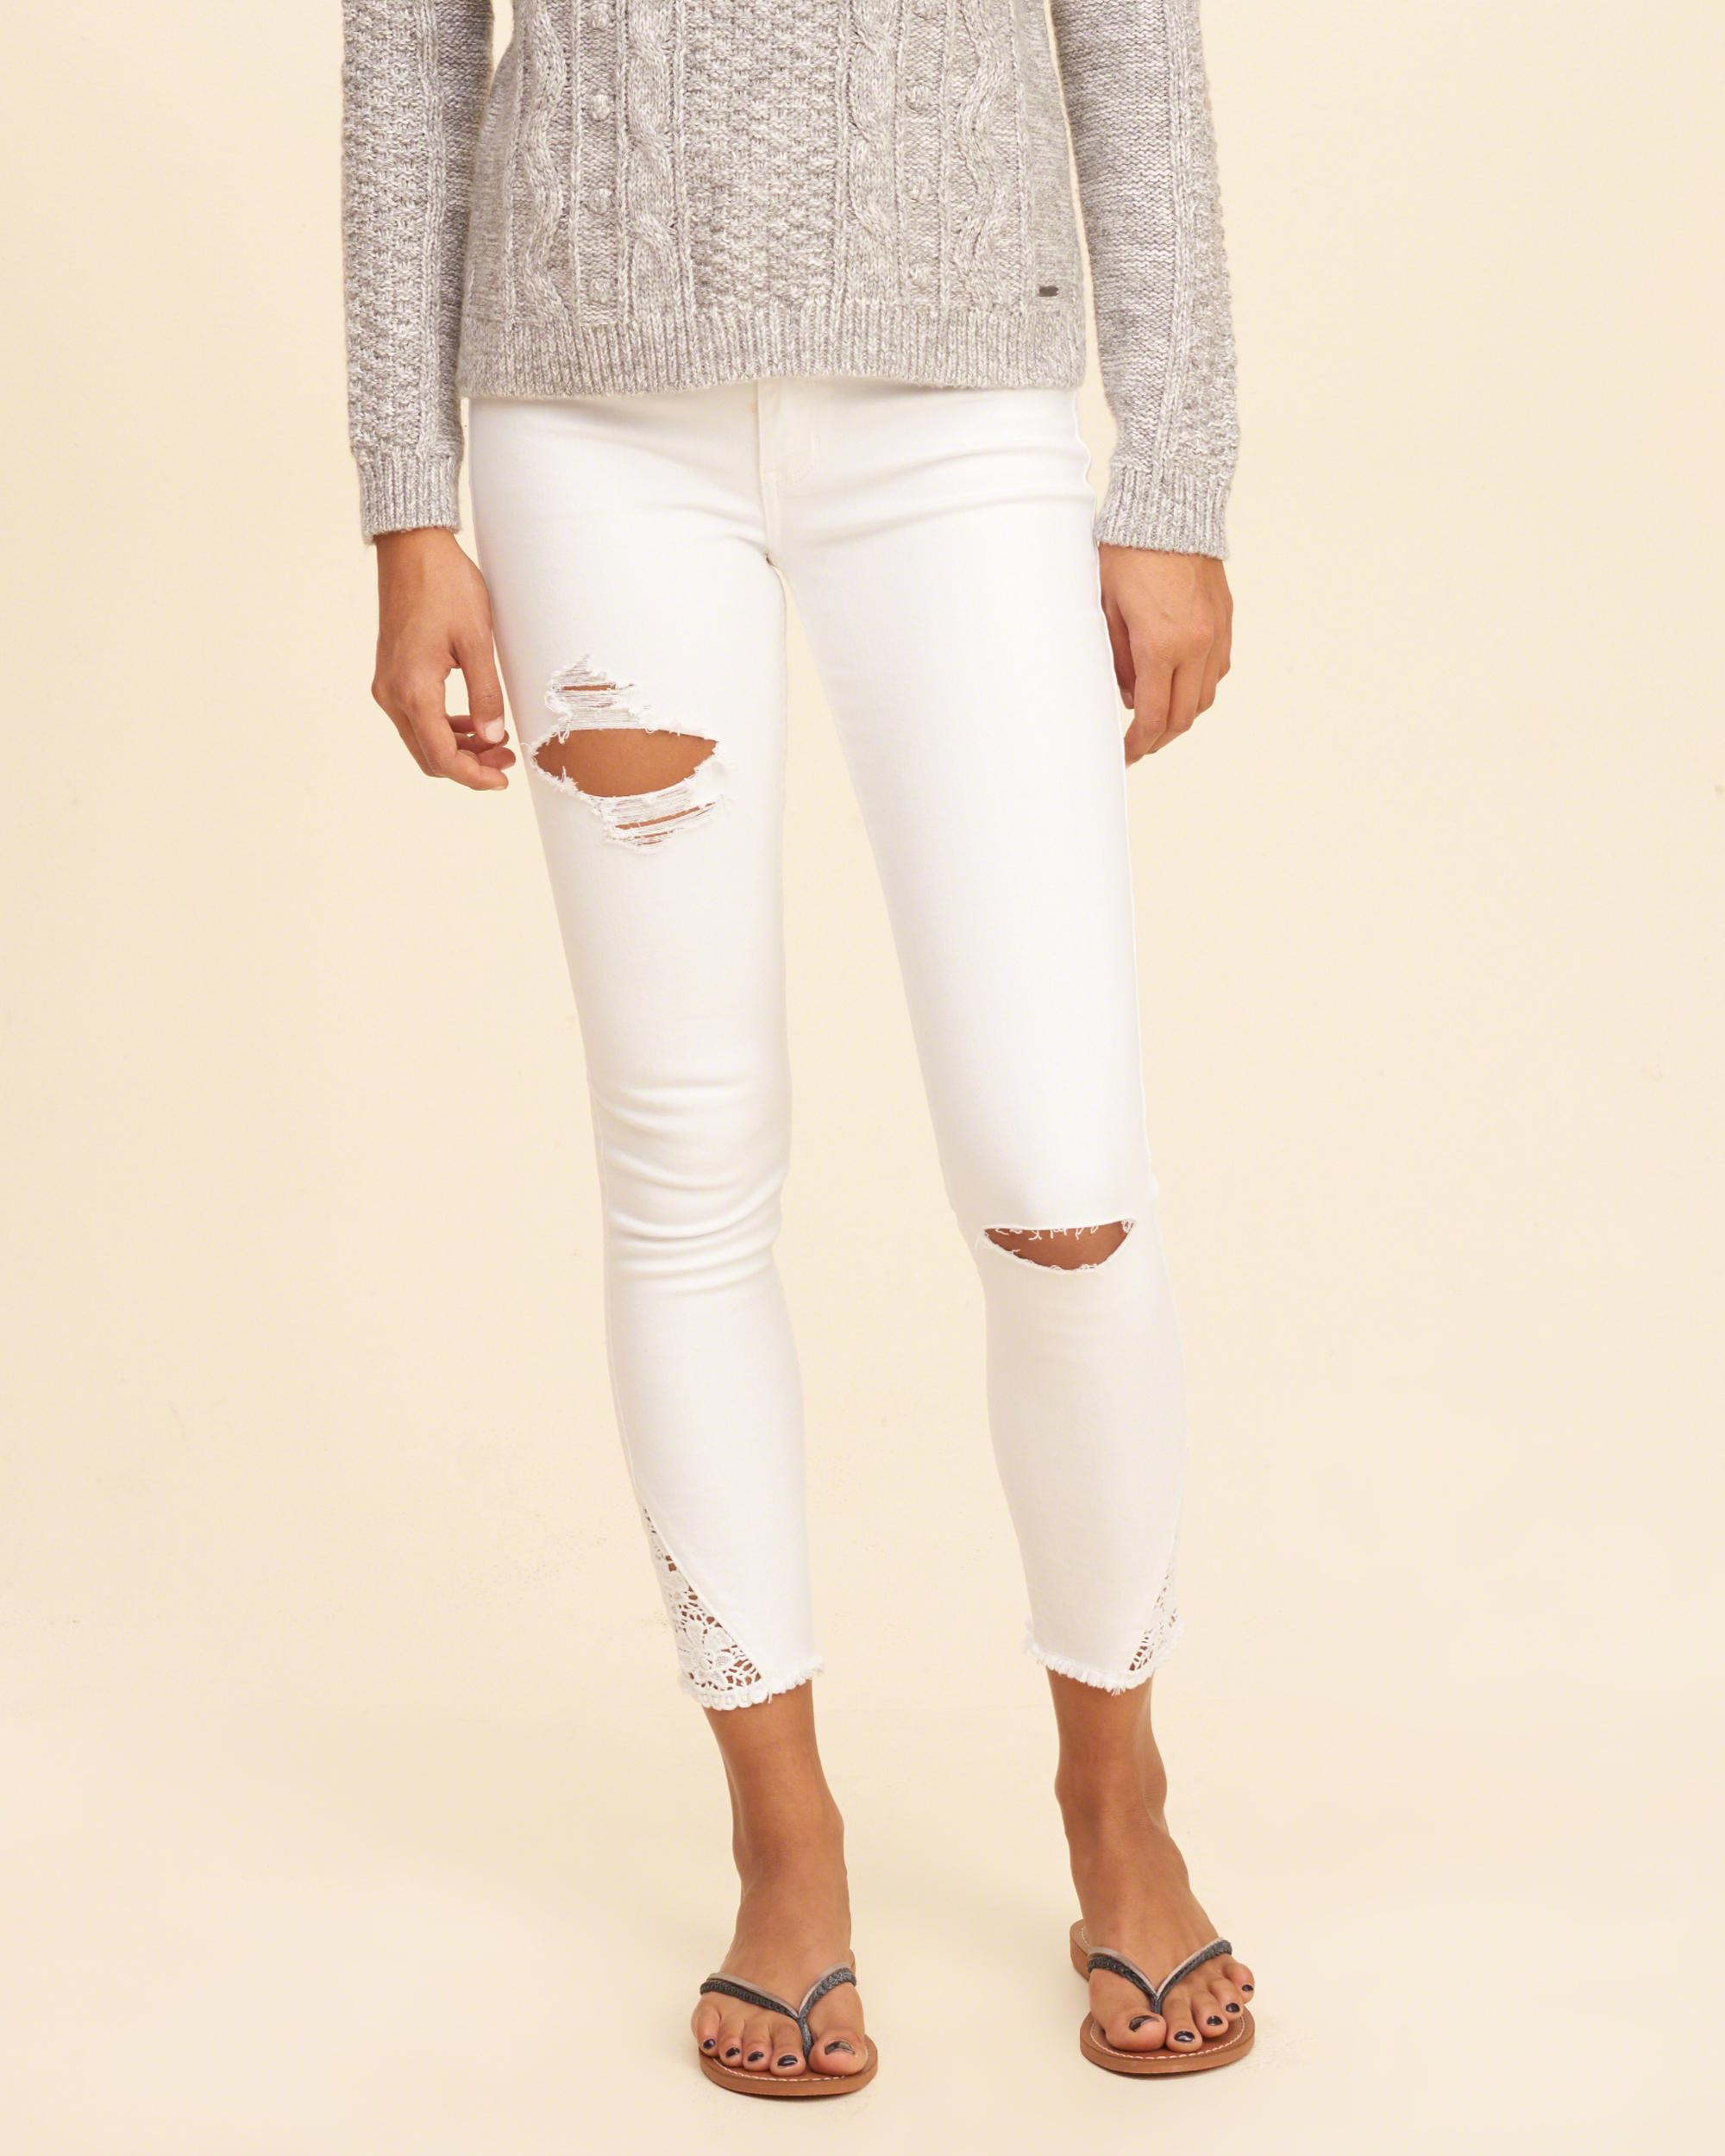 Lyst - Hollister Low-rise Crop Super Skinny Jeans in White